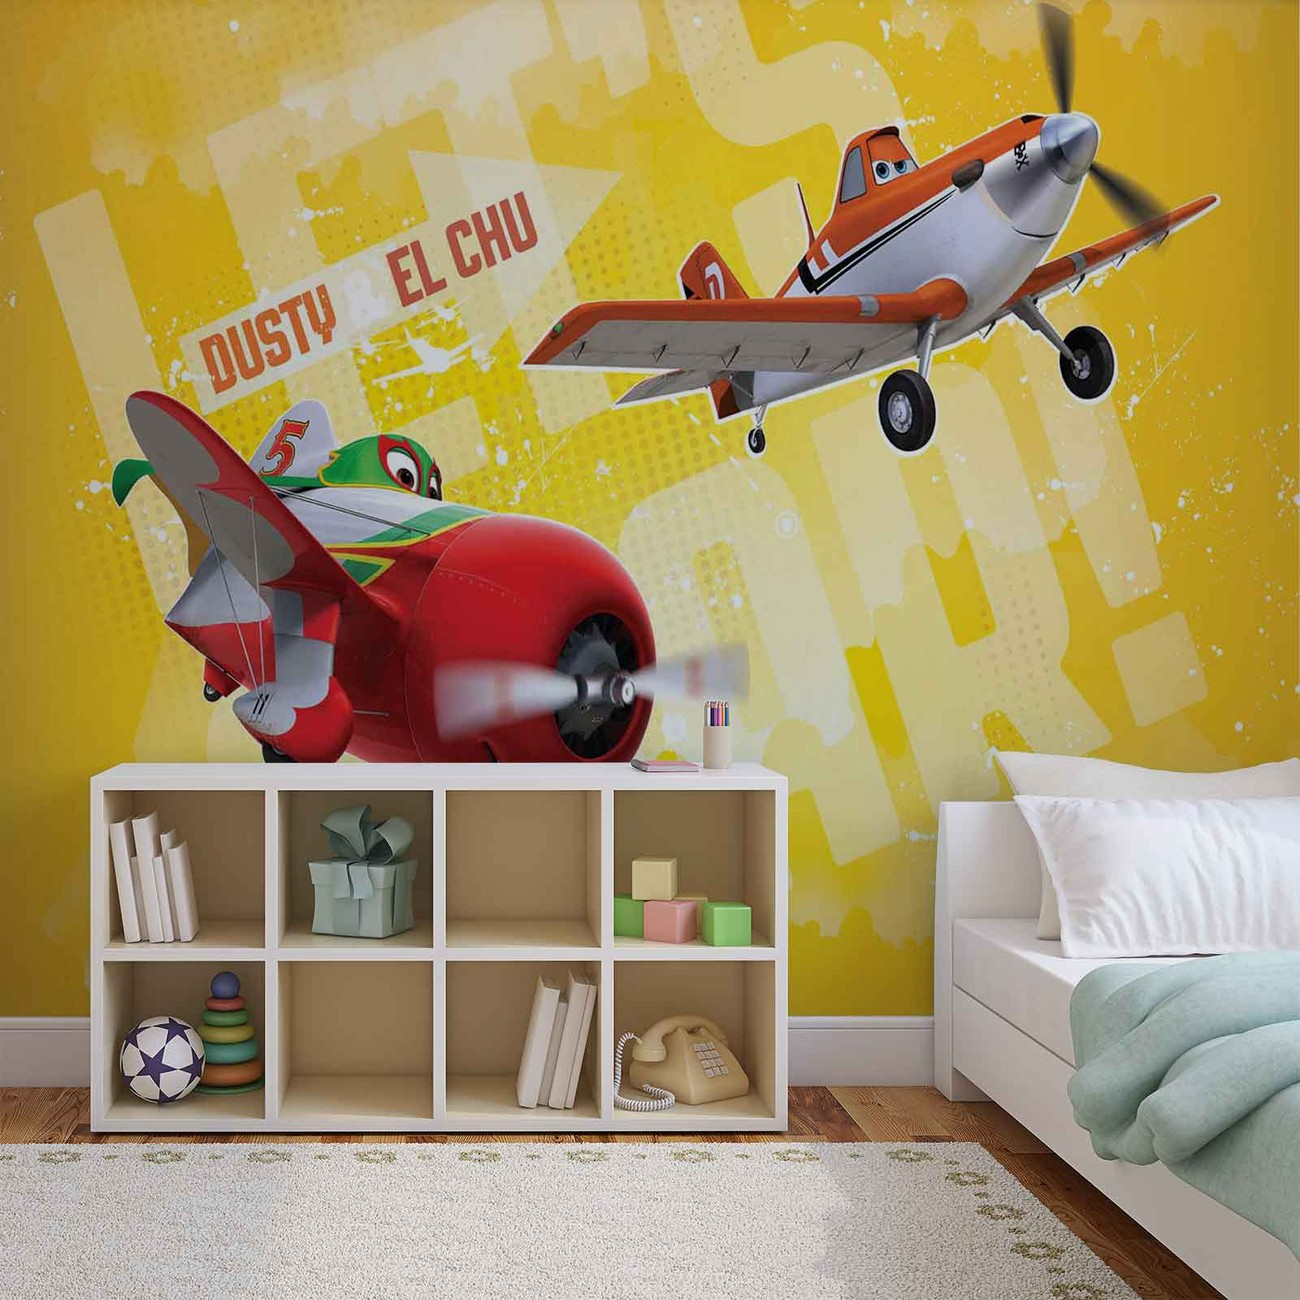 Disney planes wall paper mural buy at europosters for Disney planes wall mural